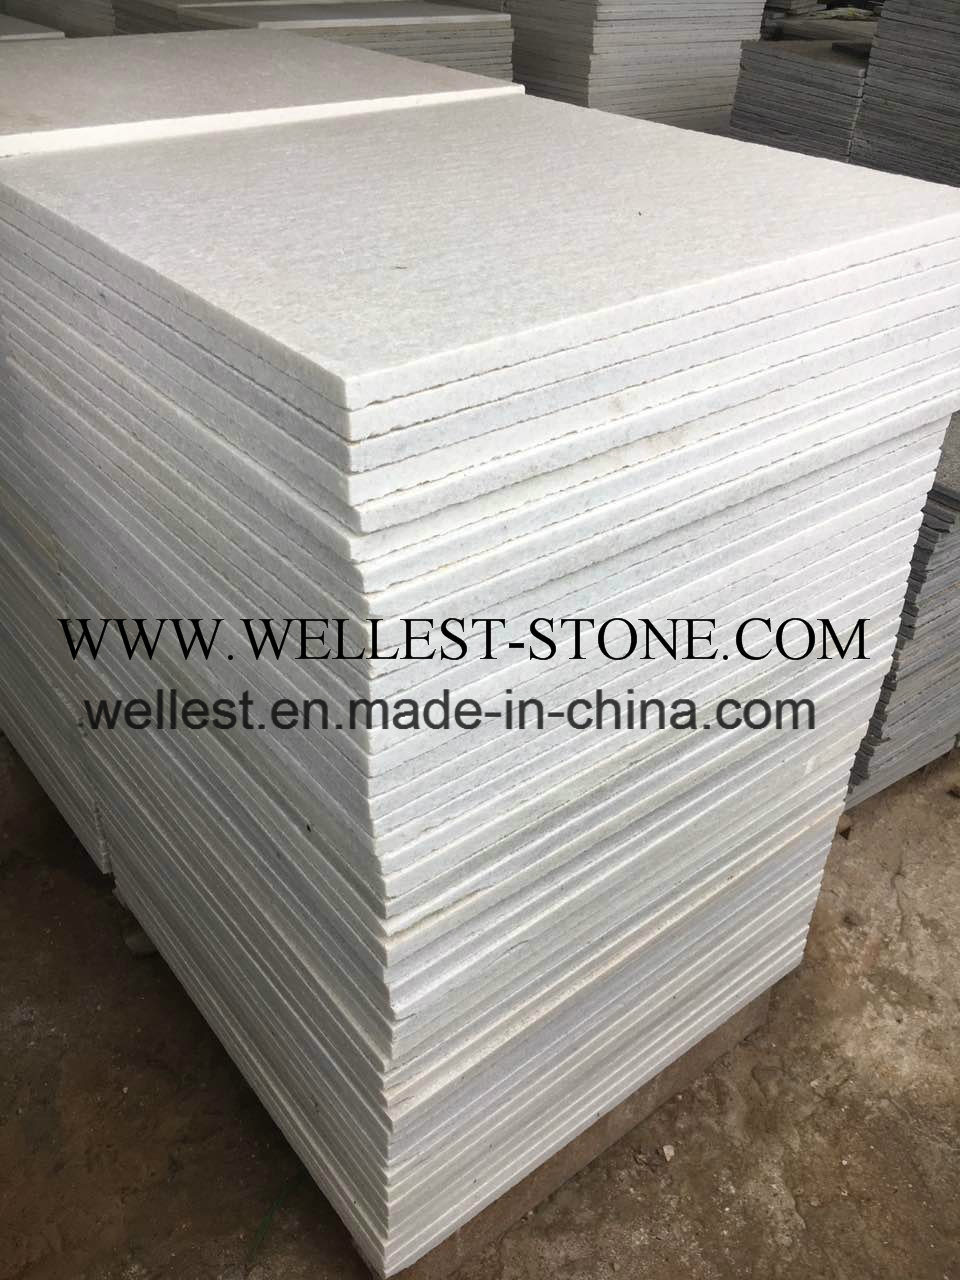 China pure white quartzite floor paving tile a grade outdoor china pure white quartzite floor paving tile a grade outdoor flooring tile wall cladding tile china quartzite tile pure white tile dailygadgetfo Choice Image